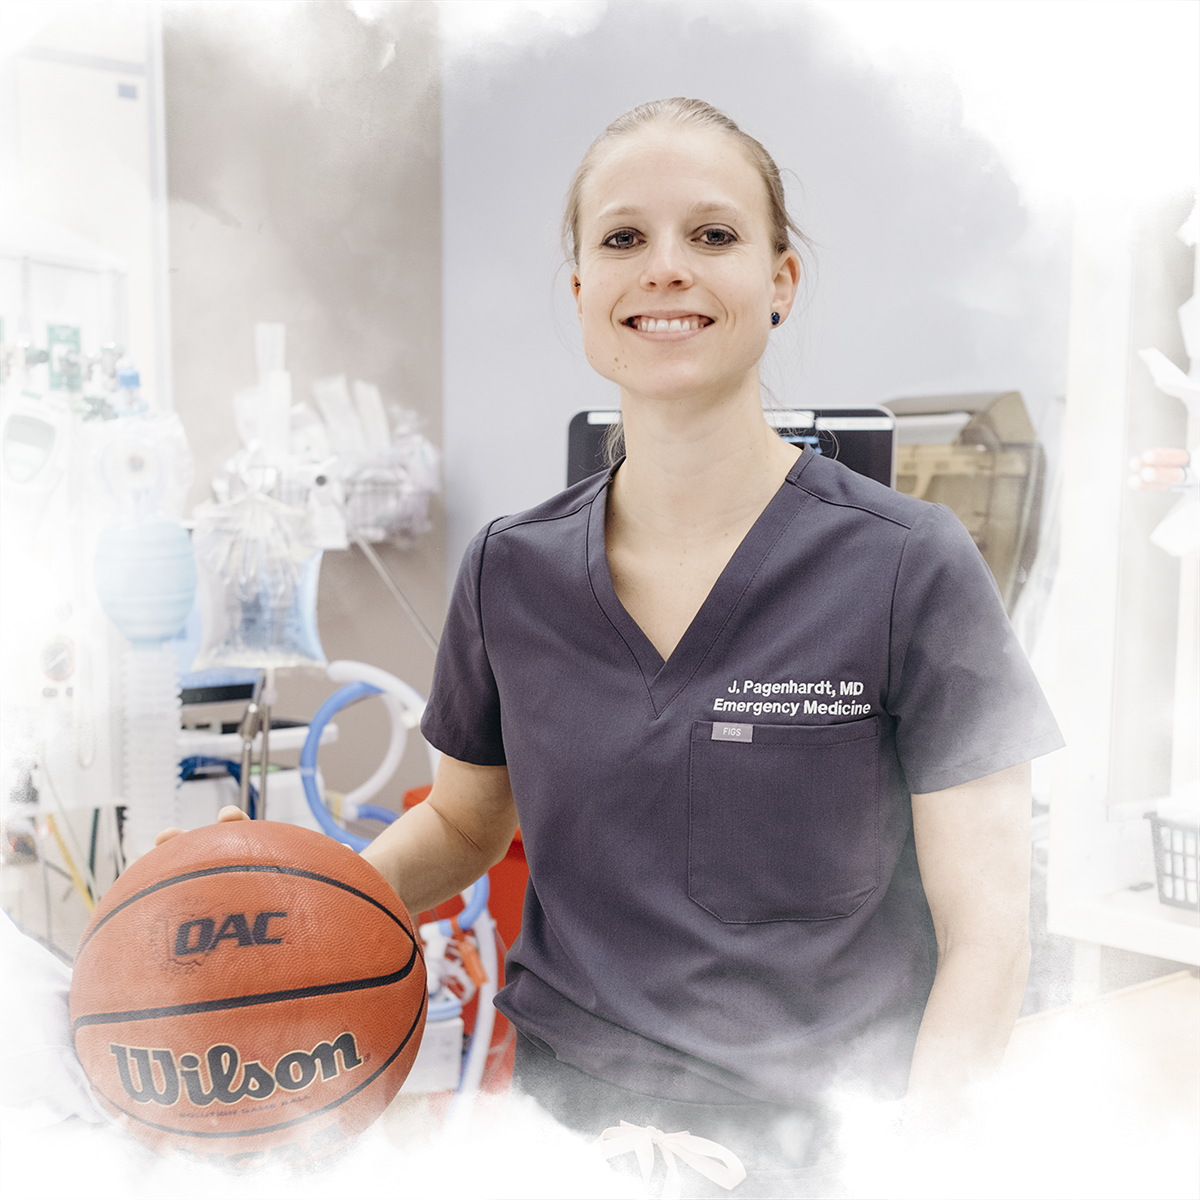 Justine Pagenhardt '08 poses with a basketball in the emergency room where she works